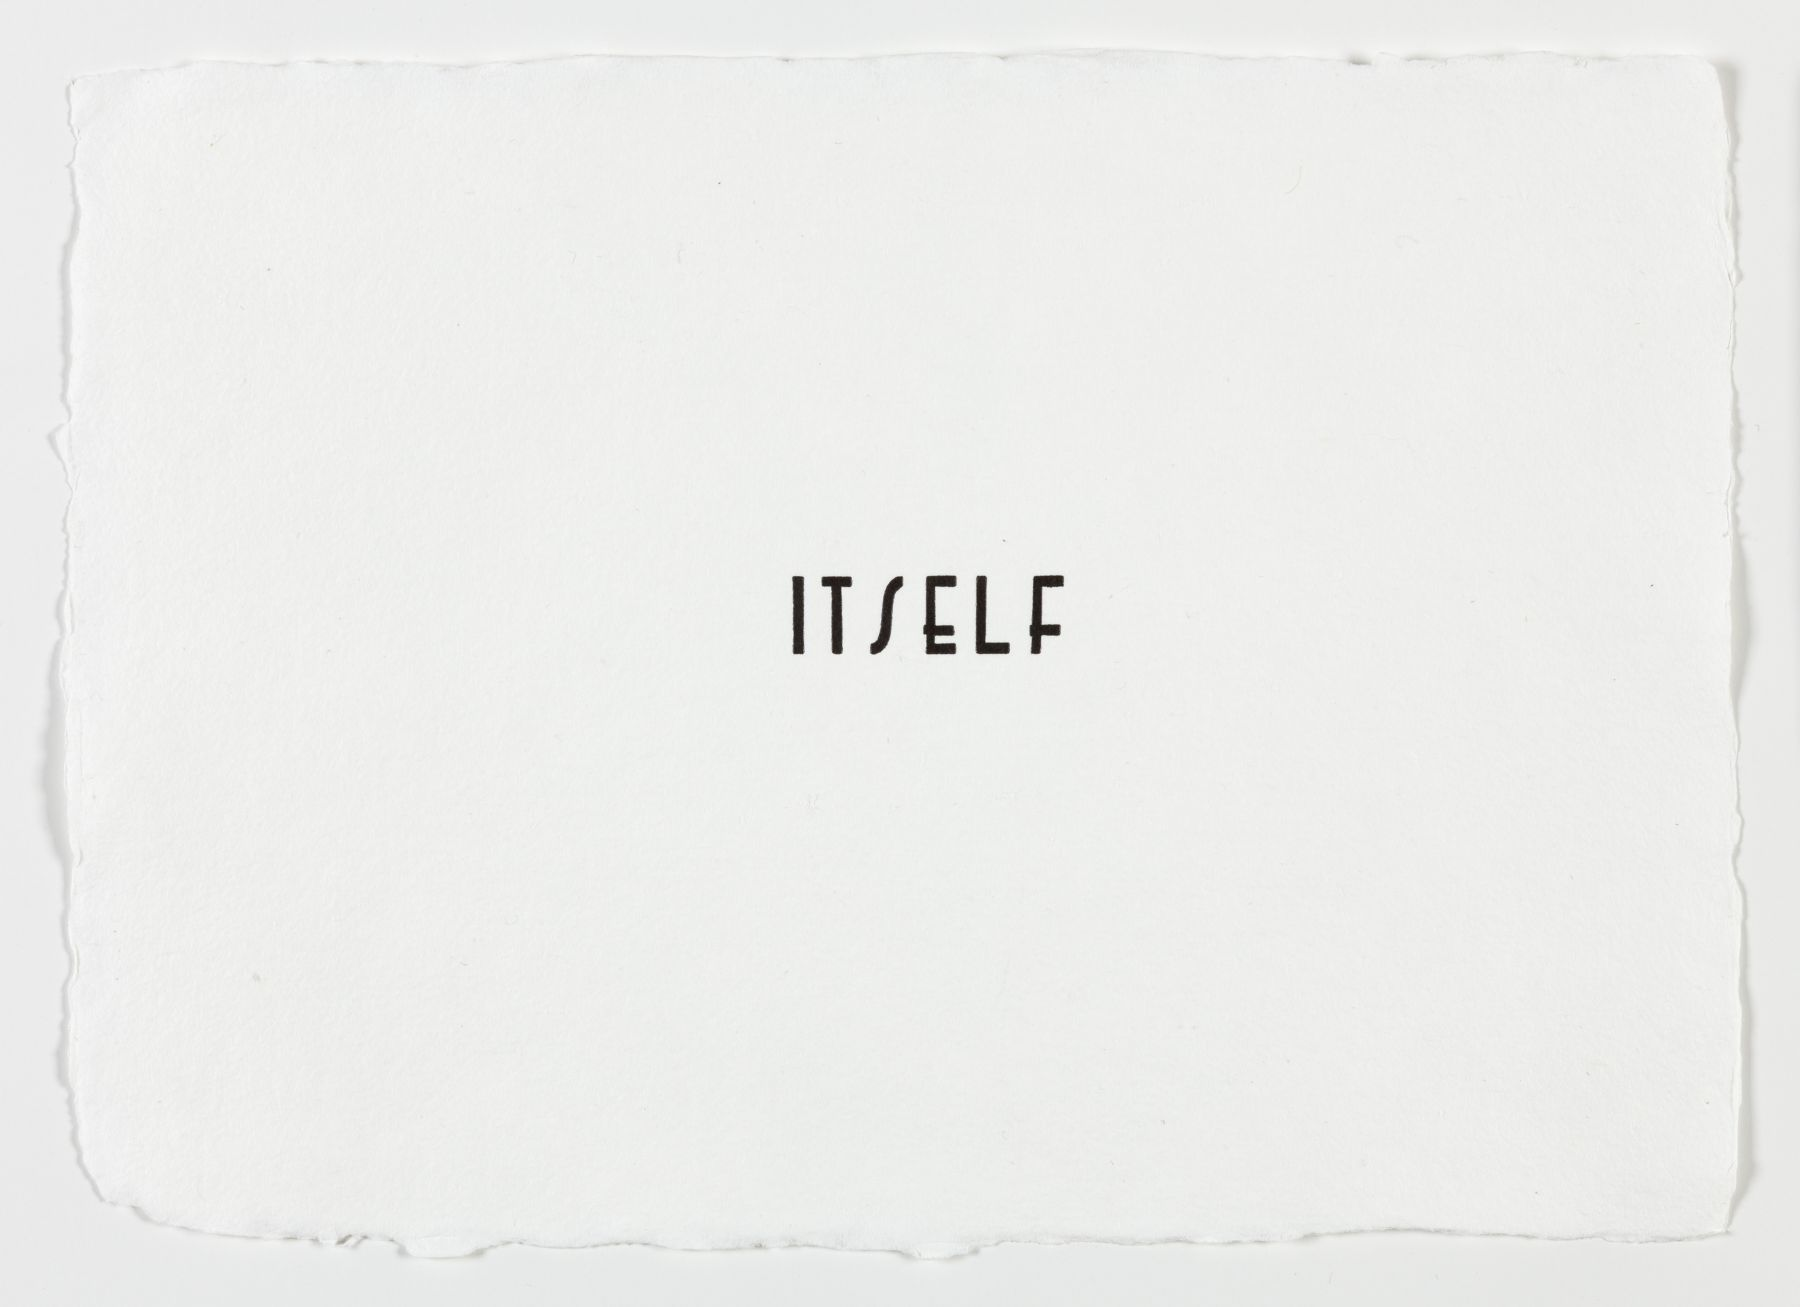 "Morgan O'Hara. LETTERPRESS SERIES: ITSELF #68. 2017. Letterpress printer's ink on handmade paper. 11"" x 7 3/4"" at Anita Rogers Gallery"